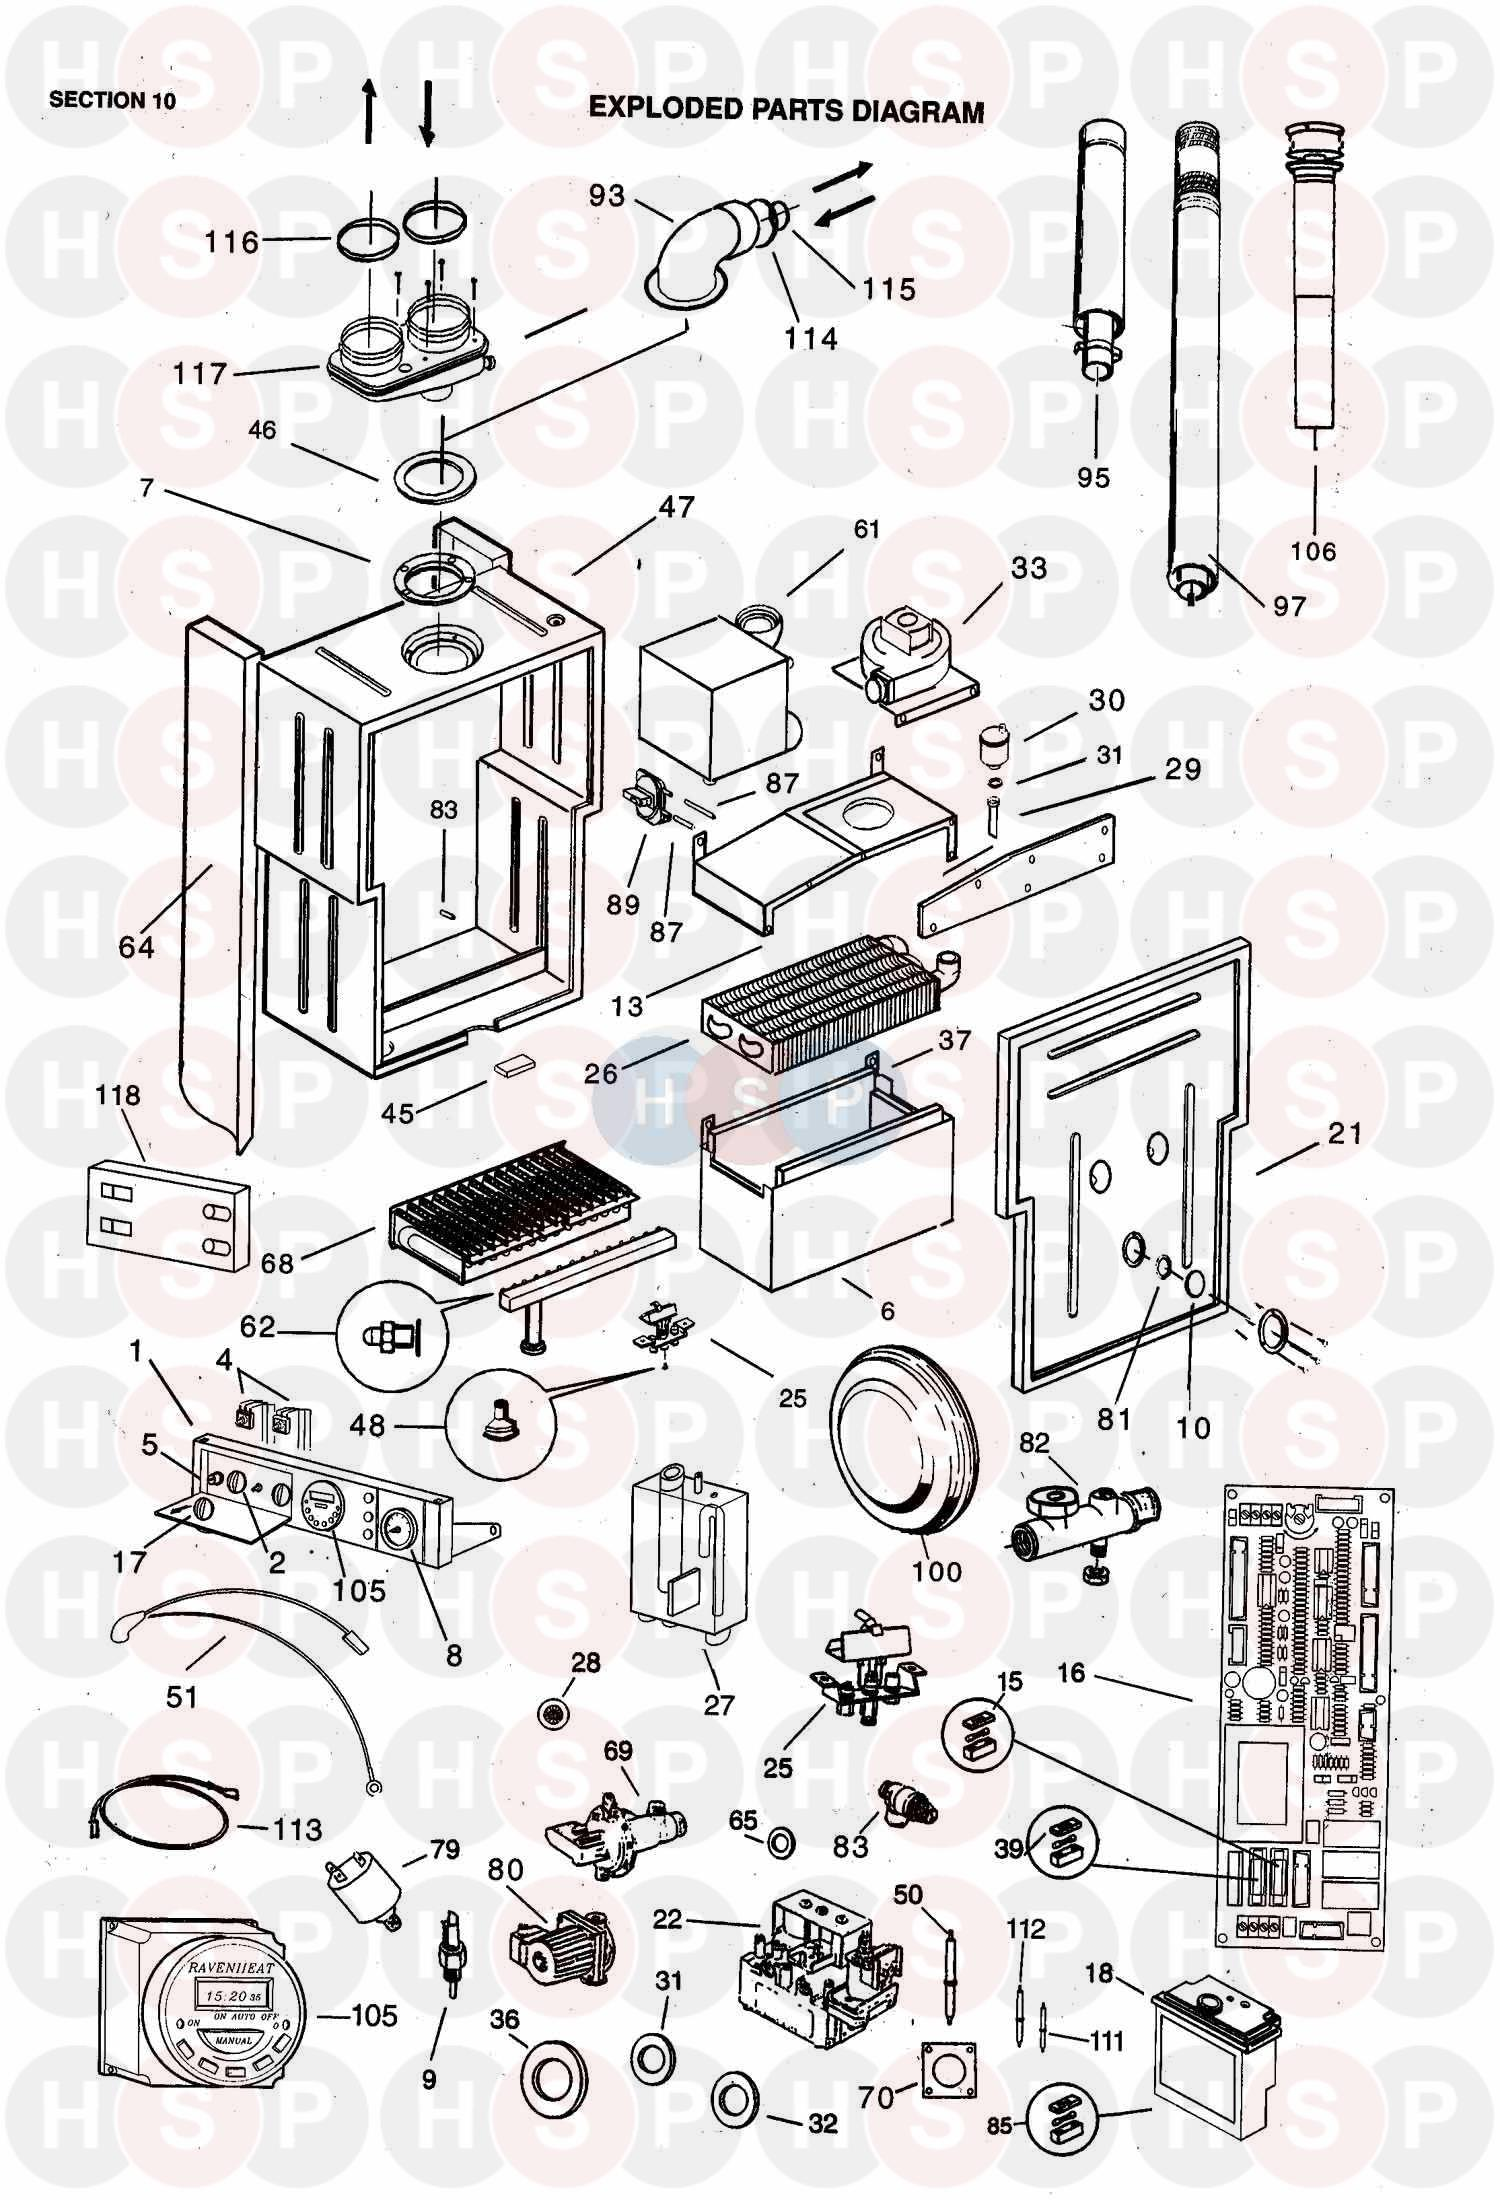 Ravenheat CSI 85T (CONDENSING) Appliance Diagram (EXPLODED